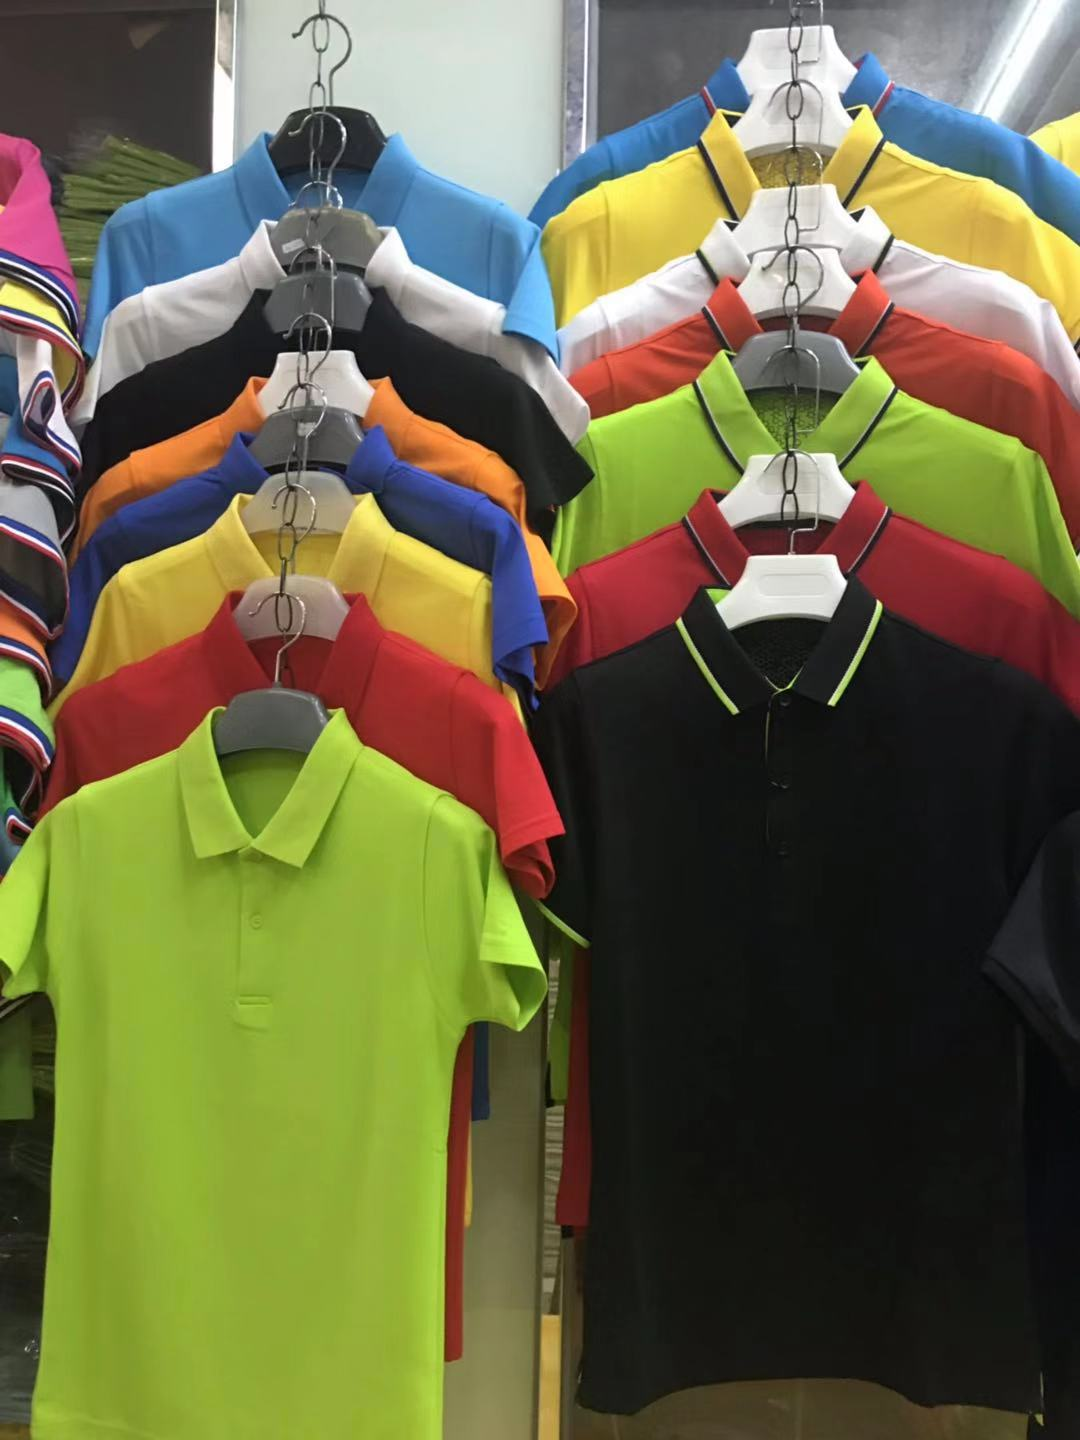 Polo 03-Promotional Polo Shirts from China T-shirts Manufacturer